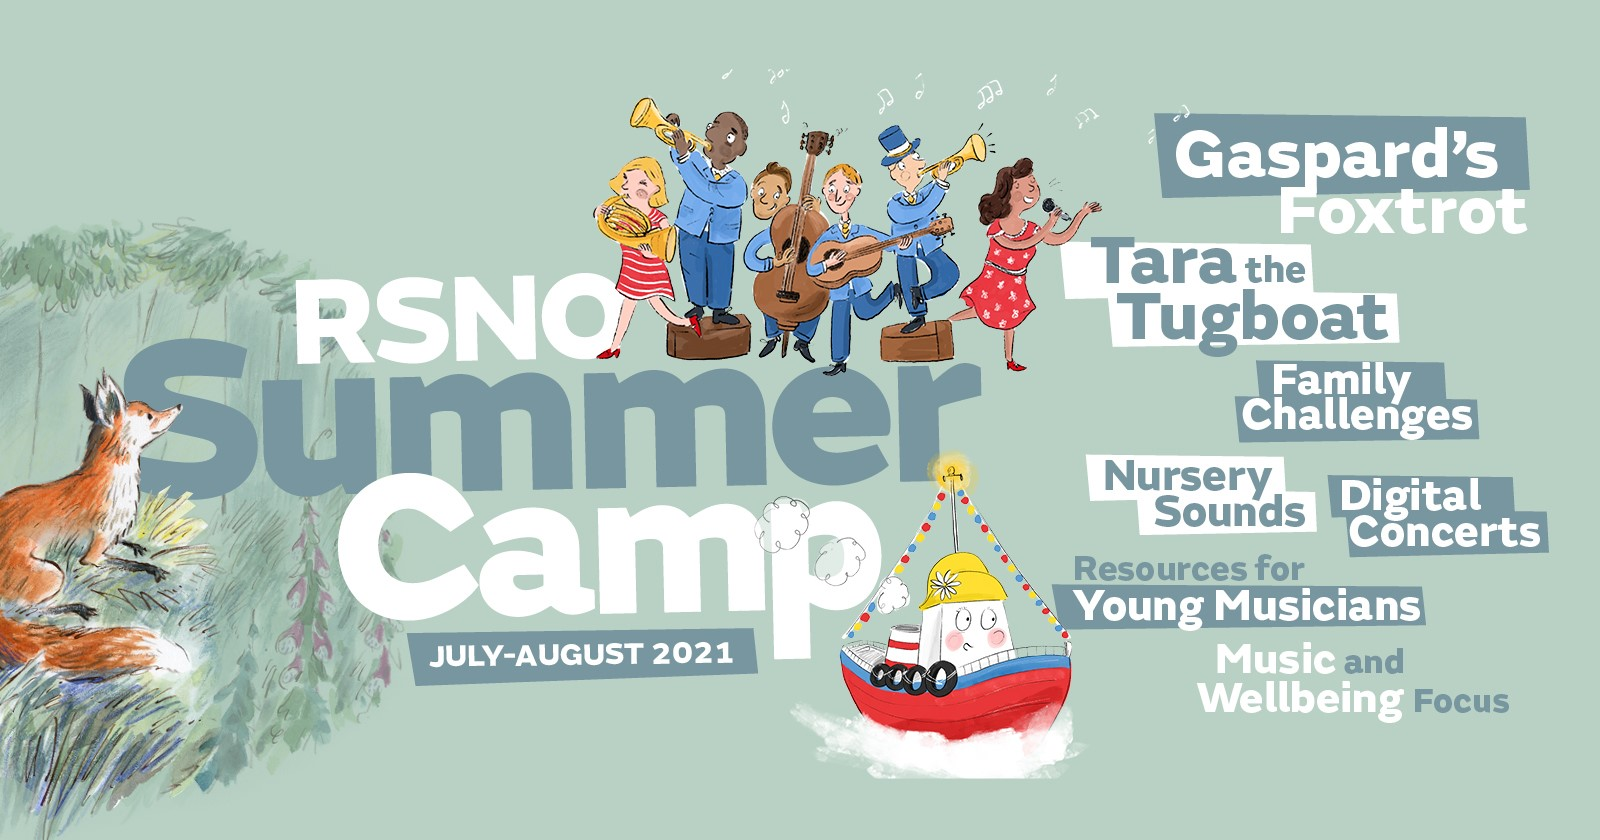 RSNO launches digital Summer Camp for children to enjoy across the school holidays